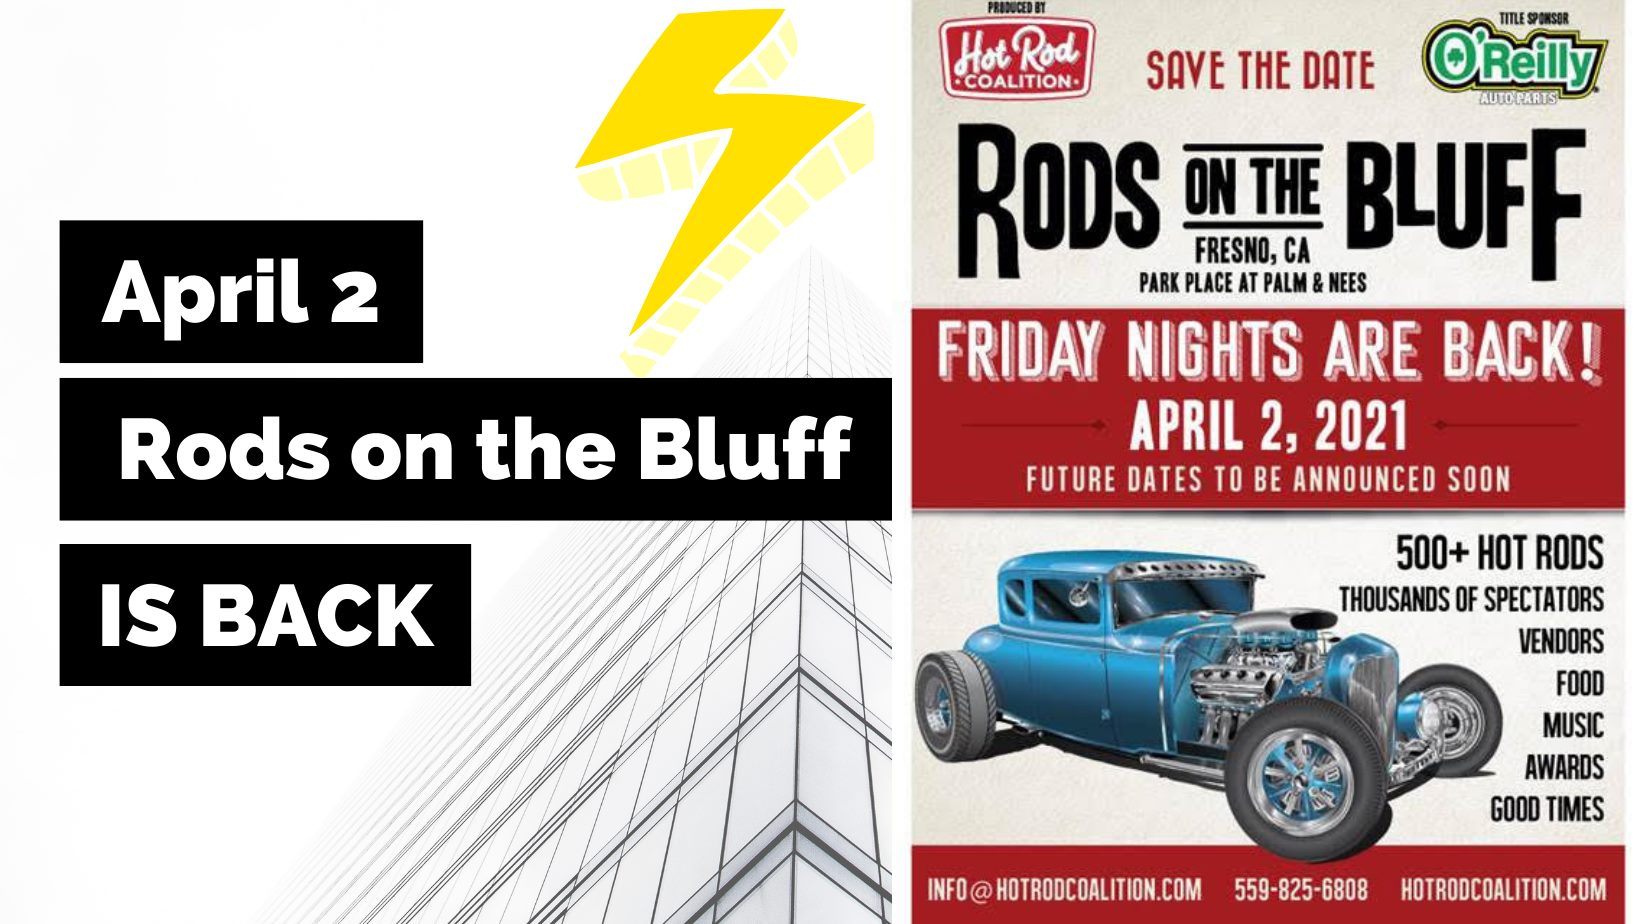 Rods on the Bluff